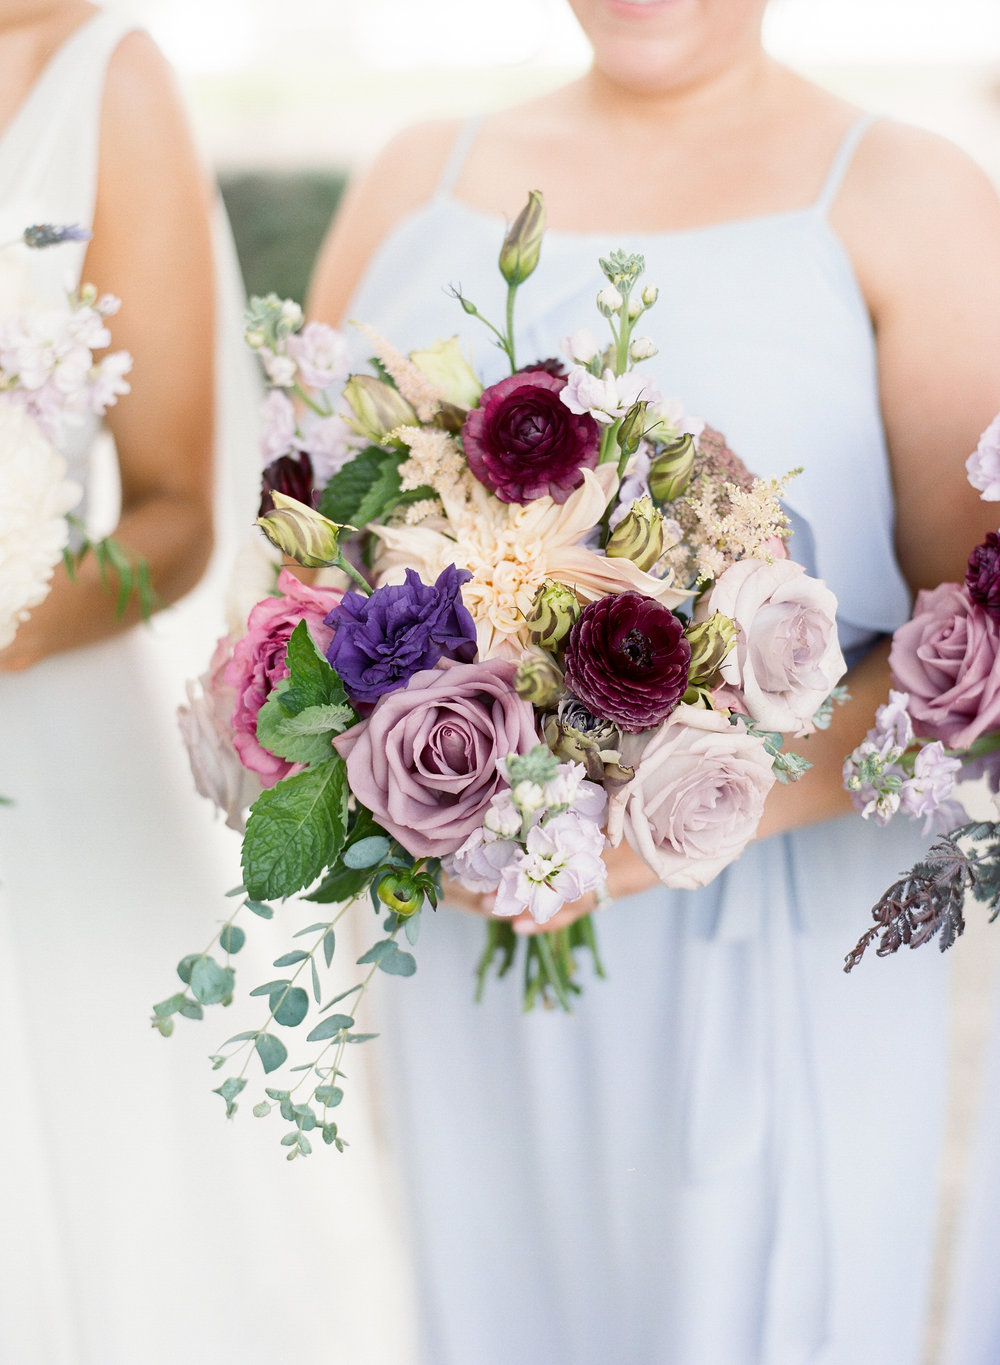 Lavender wedding bouquets at The Island House  Outdoor wedding ceremony at The Island House on Johns Island SC  //  Charleston wedding florist On A Limb Floral Studio